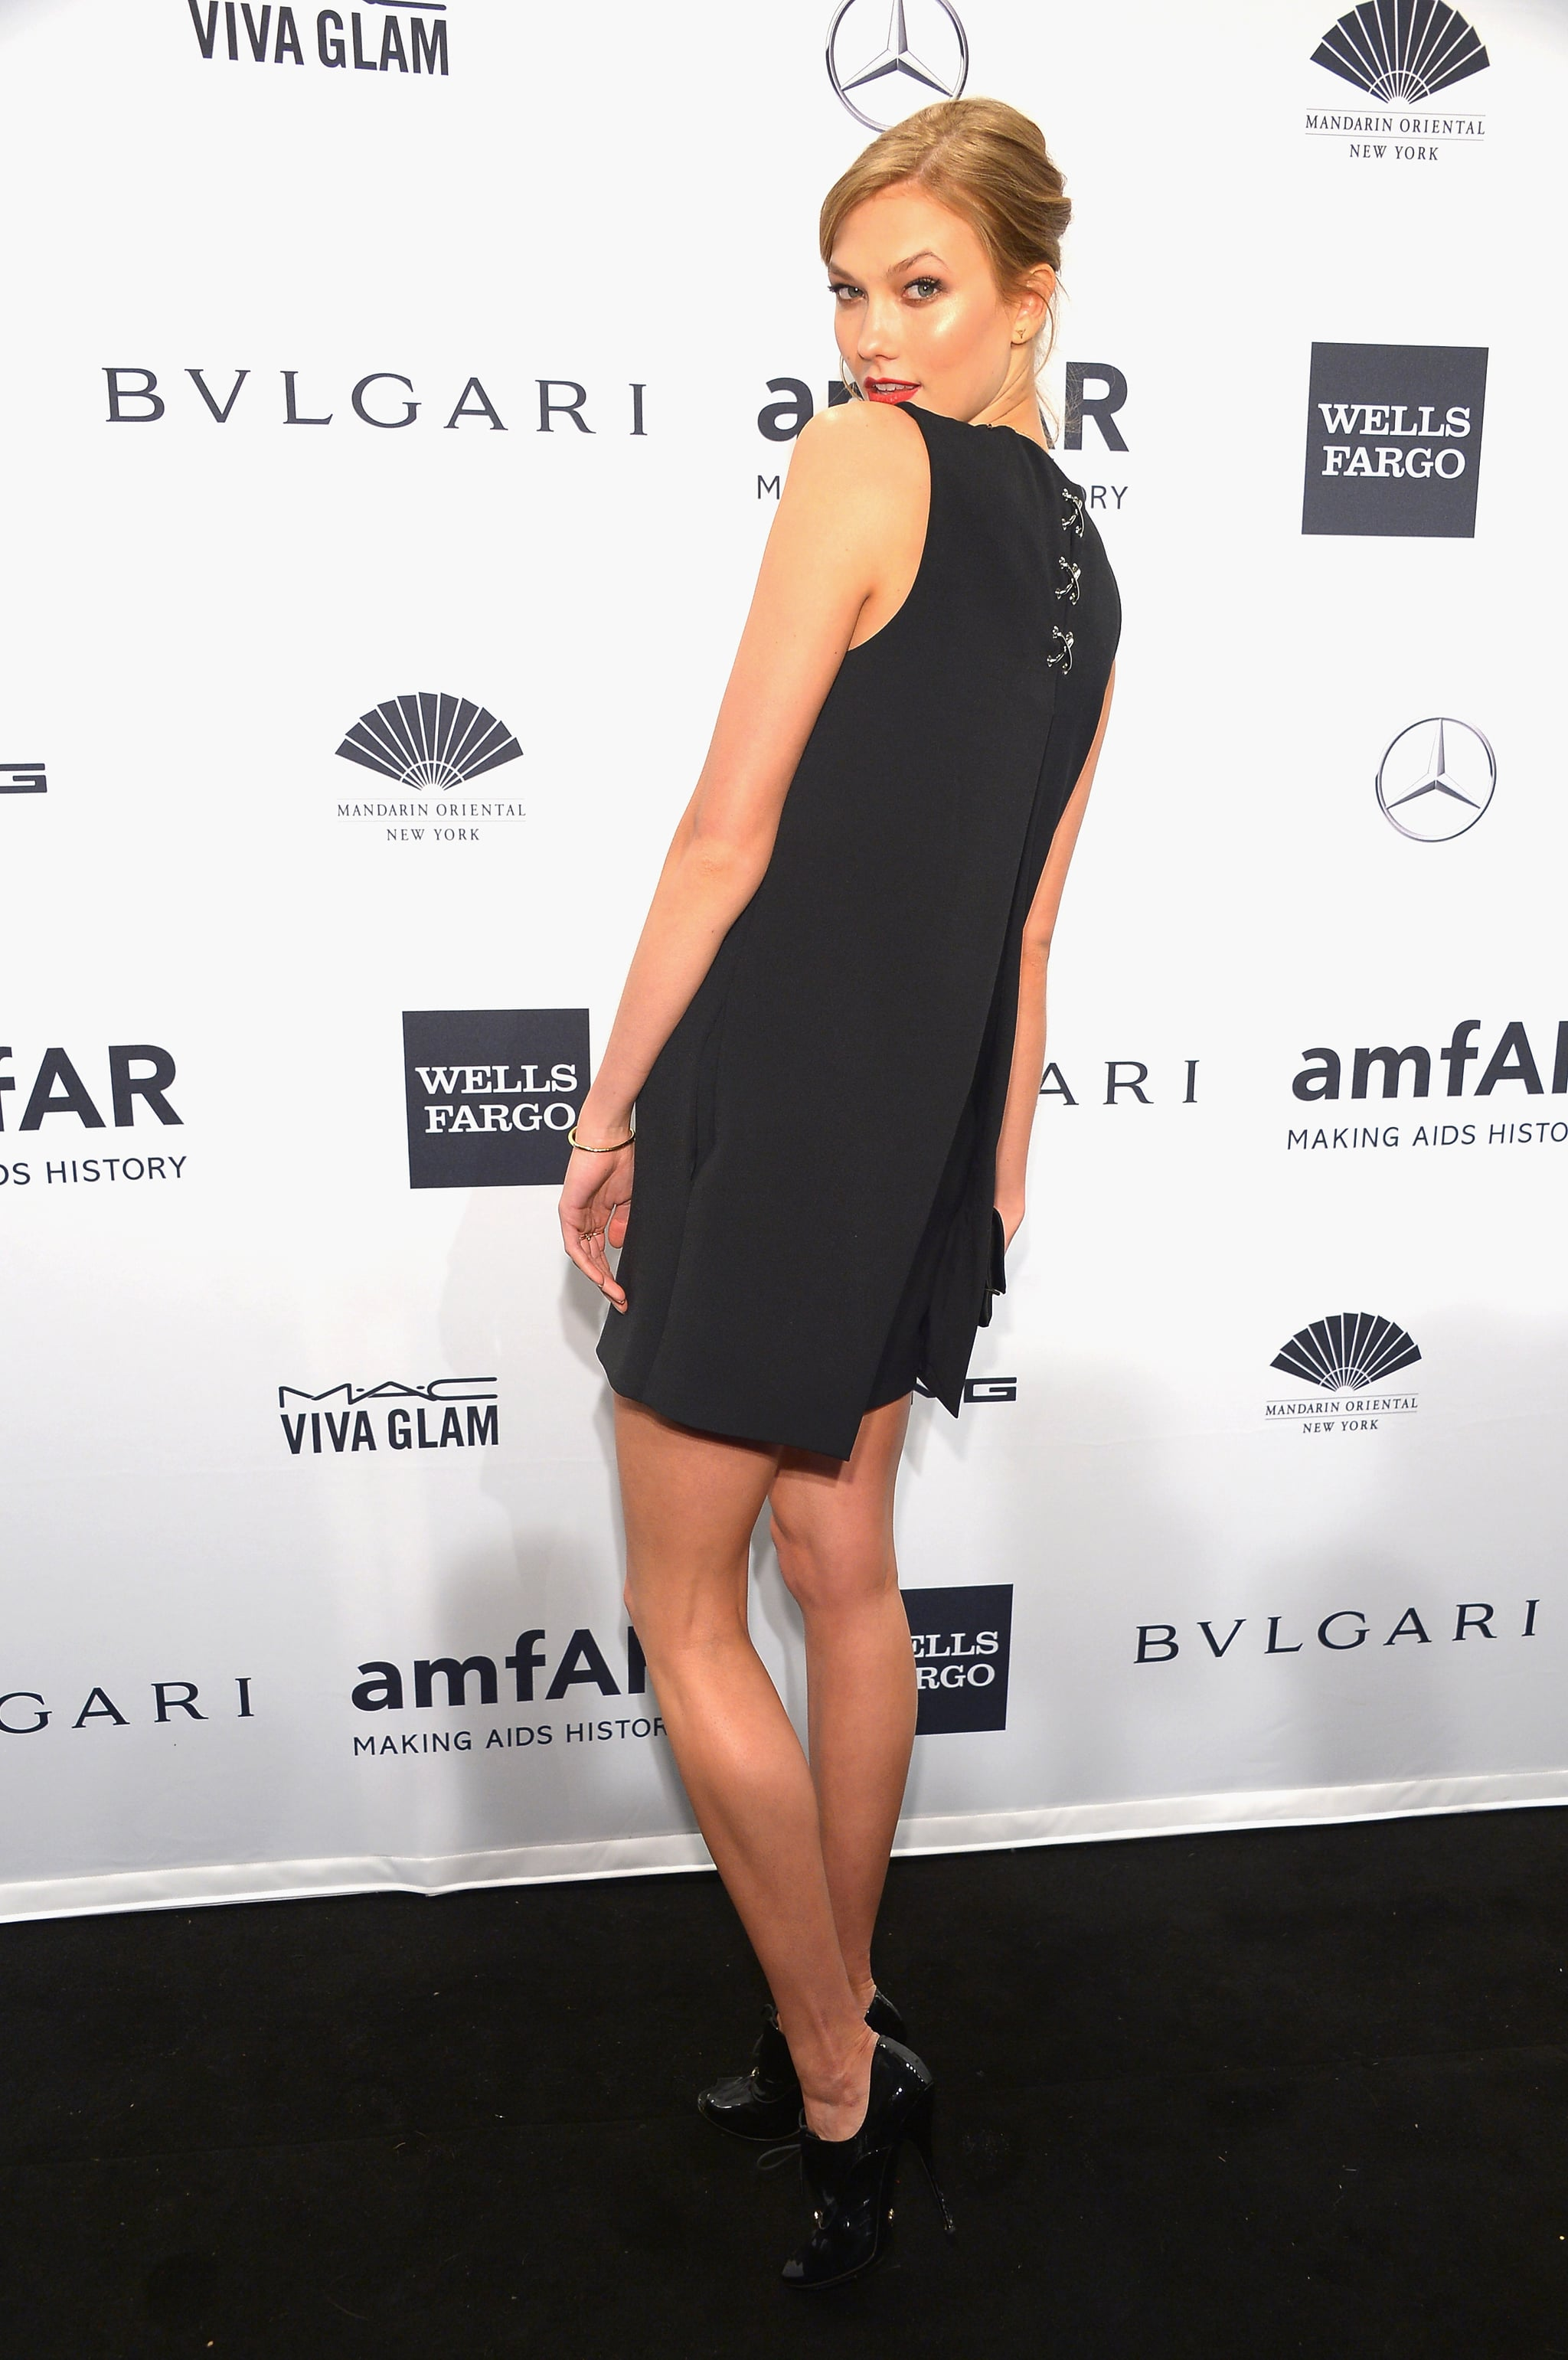 Karlie Kloss, wearing Alexander Wang, at amfAR's New York Gala.